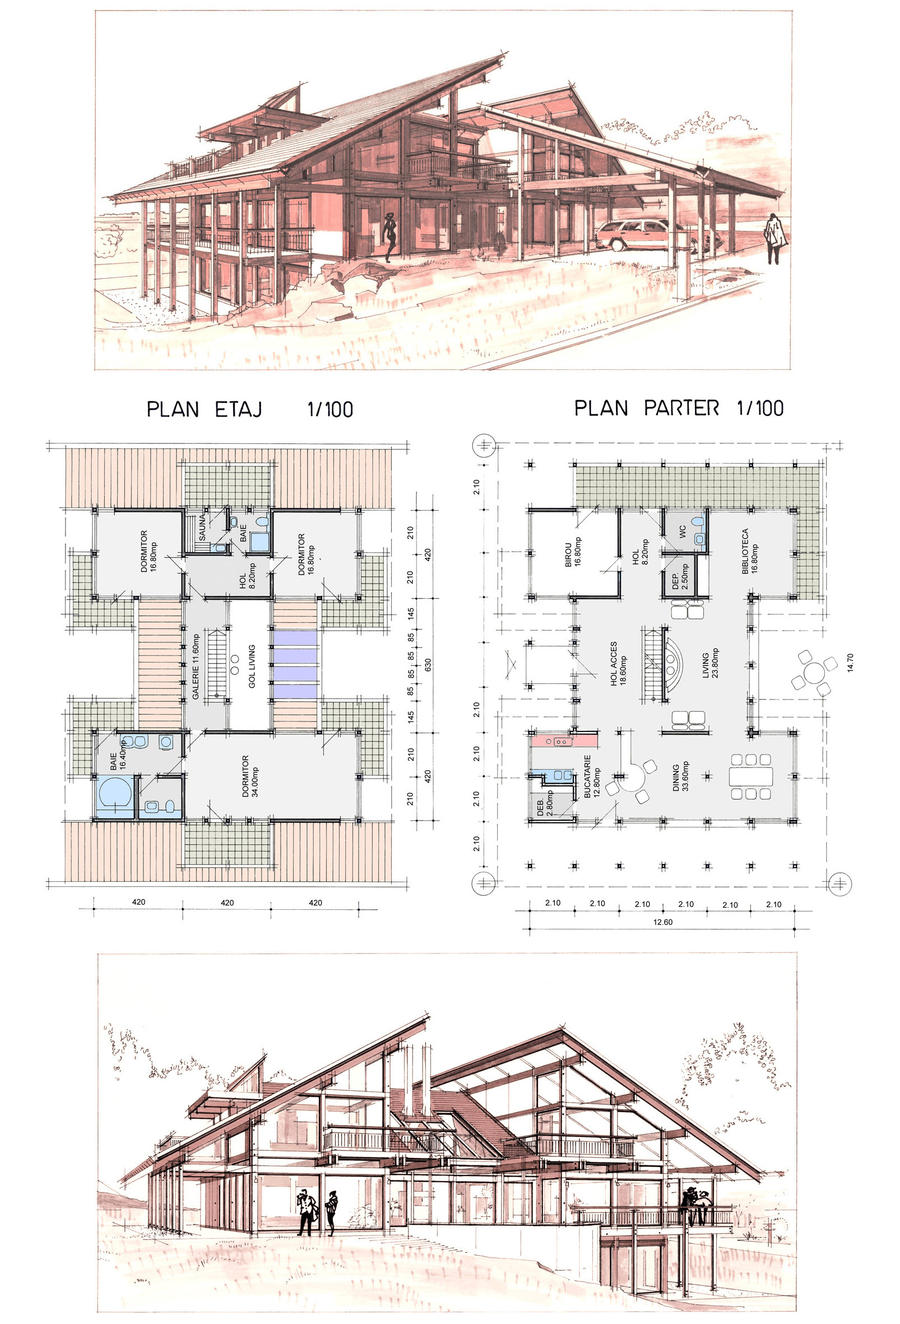 Huf haus layout by dashaus on deviantart - Lay outs binnenkomst in het huis ...